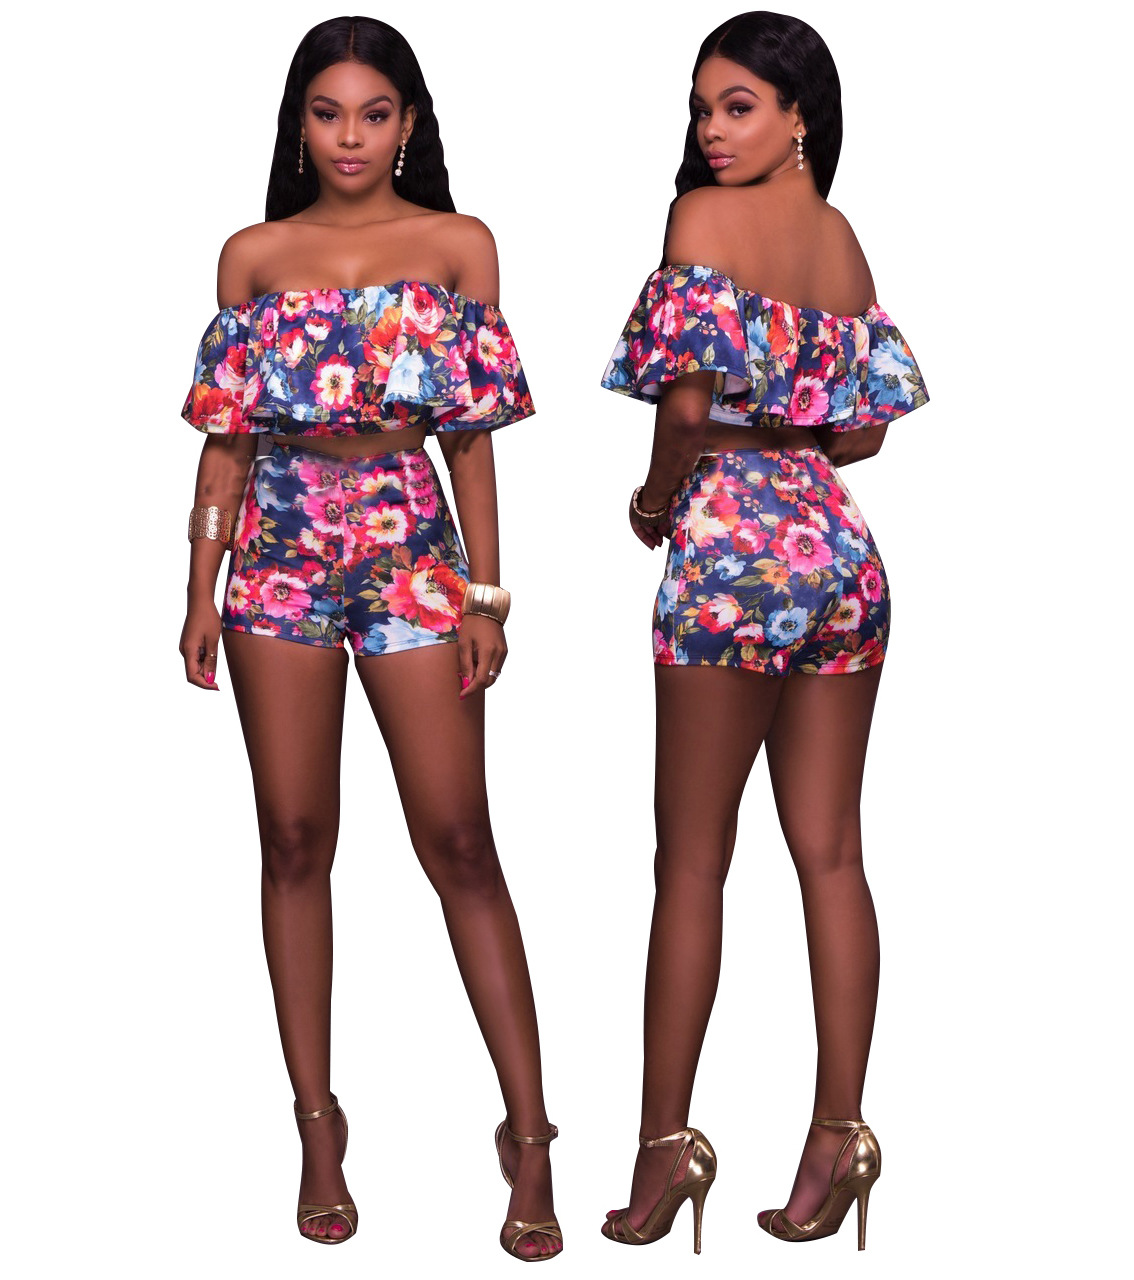 886f23fb17c US  9 - Sexy Flower Strapless Crop Top and Shorts 26529 -  www.global-lover.com